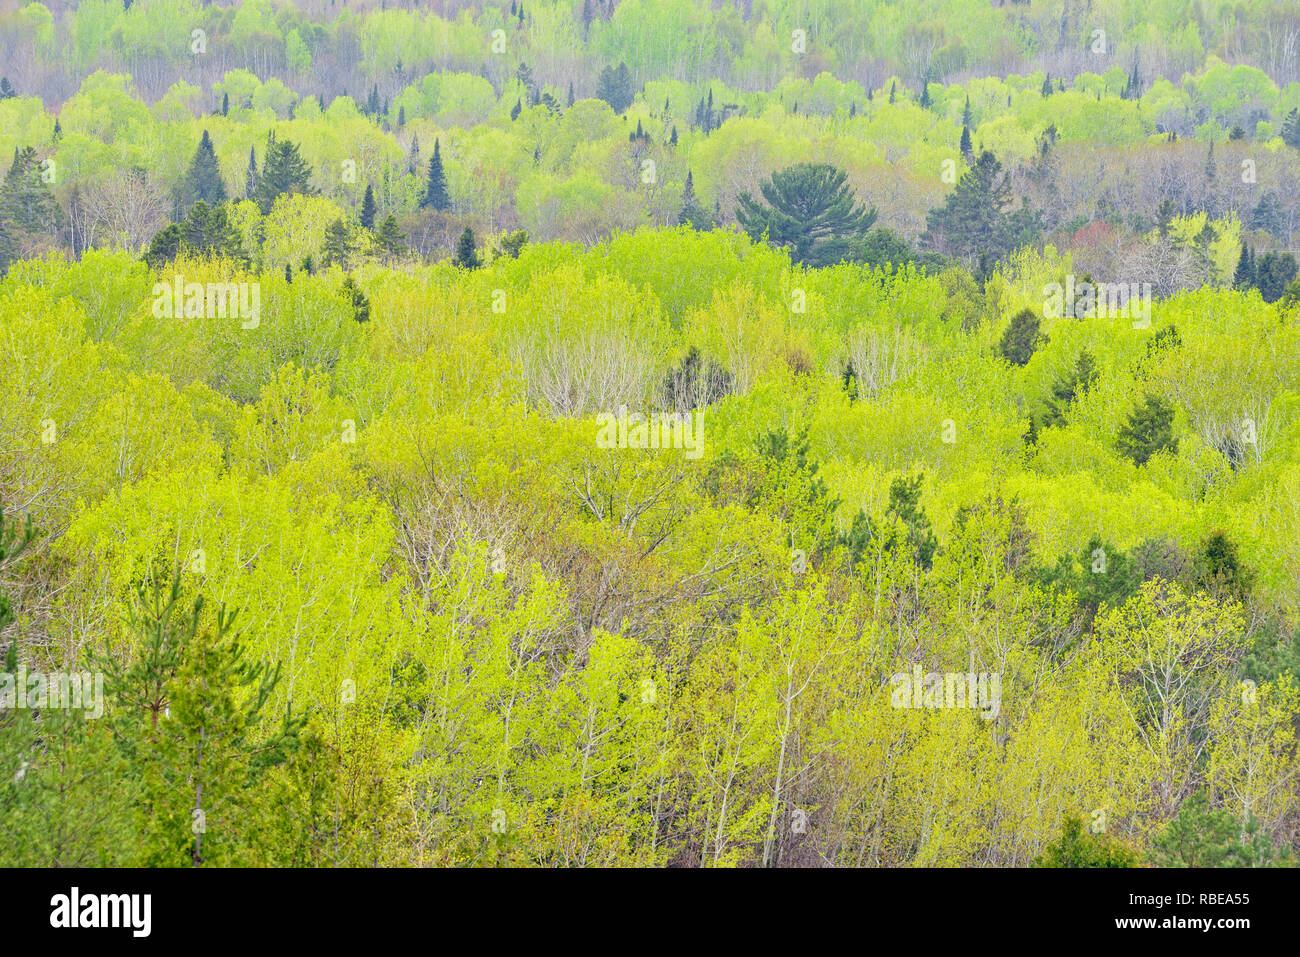 Spring foliage in aspen trees with spruce and pine, M'chigeeng First Nation, Manitoulin Island, Ontario, Canada - Stock Image